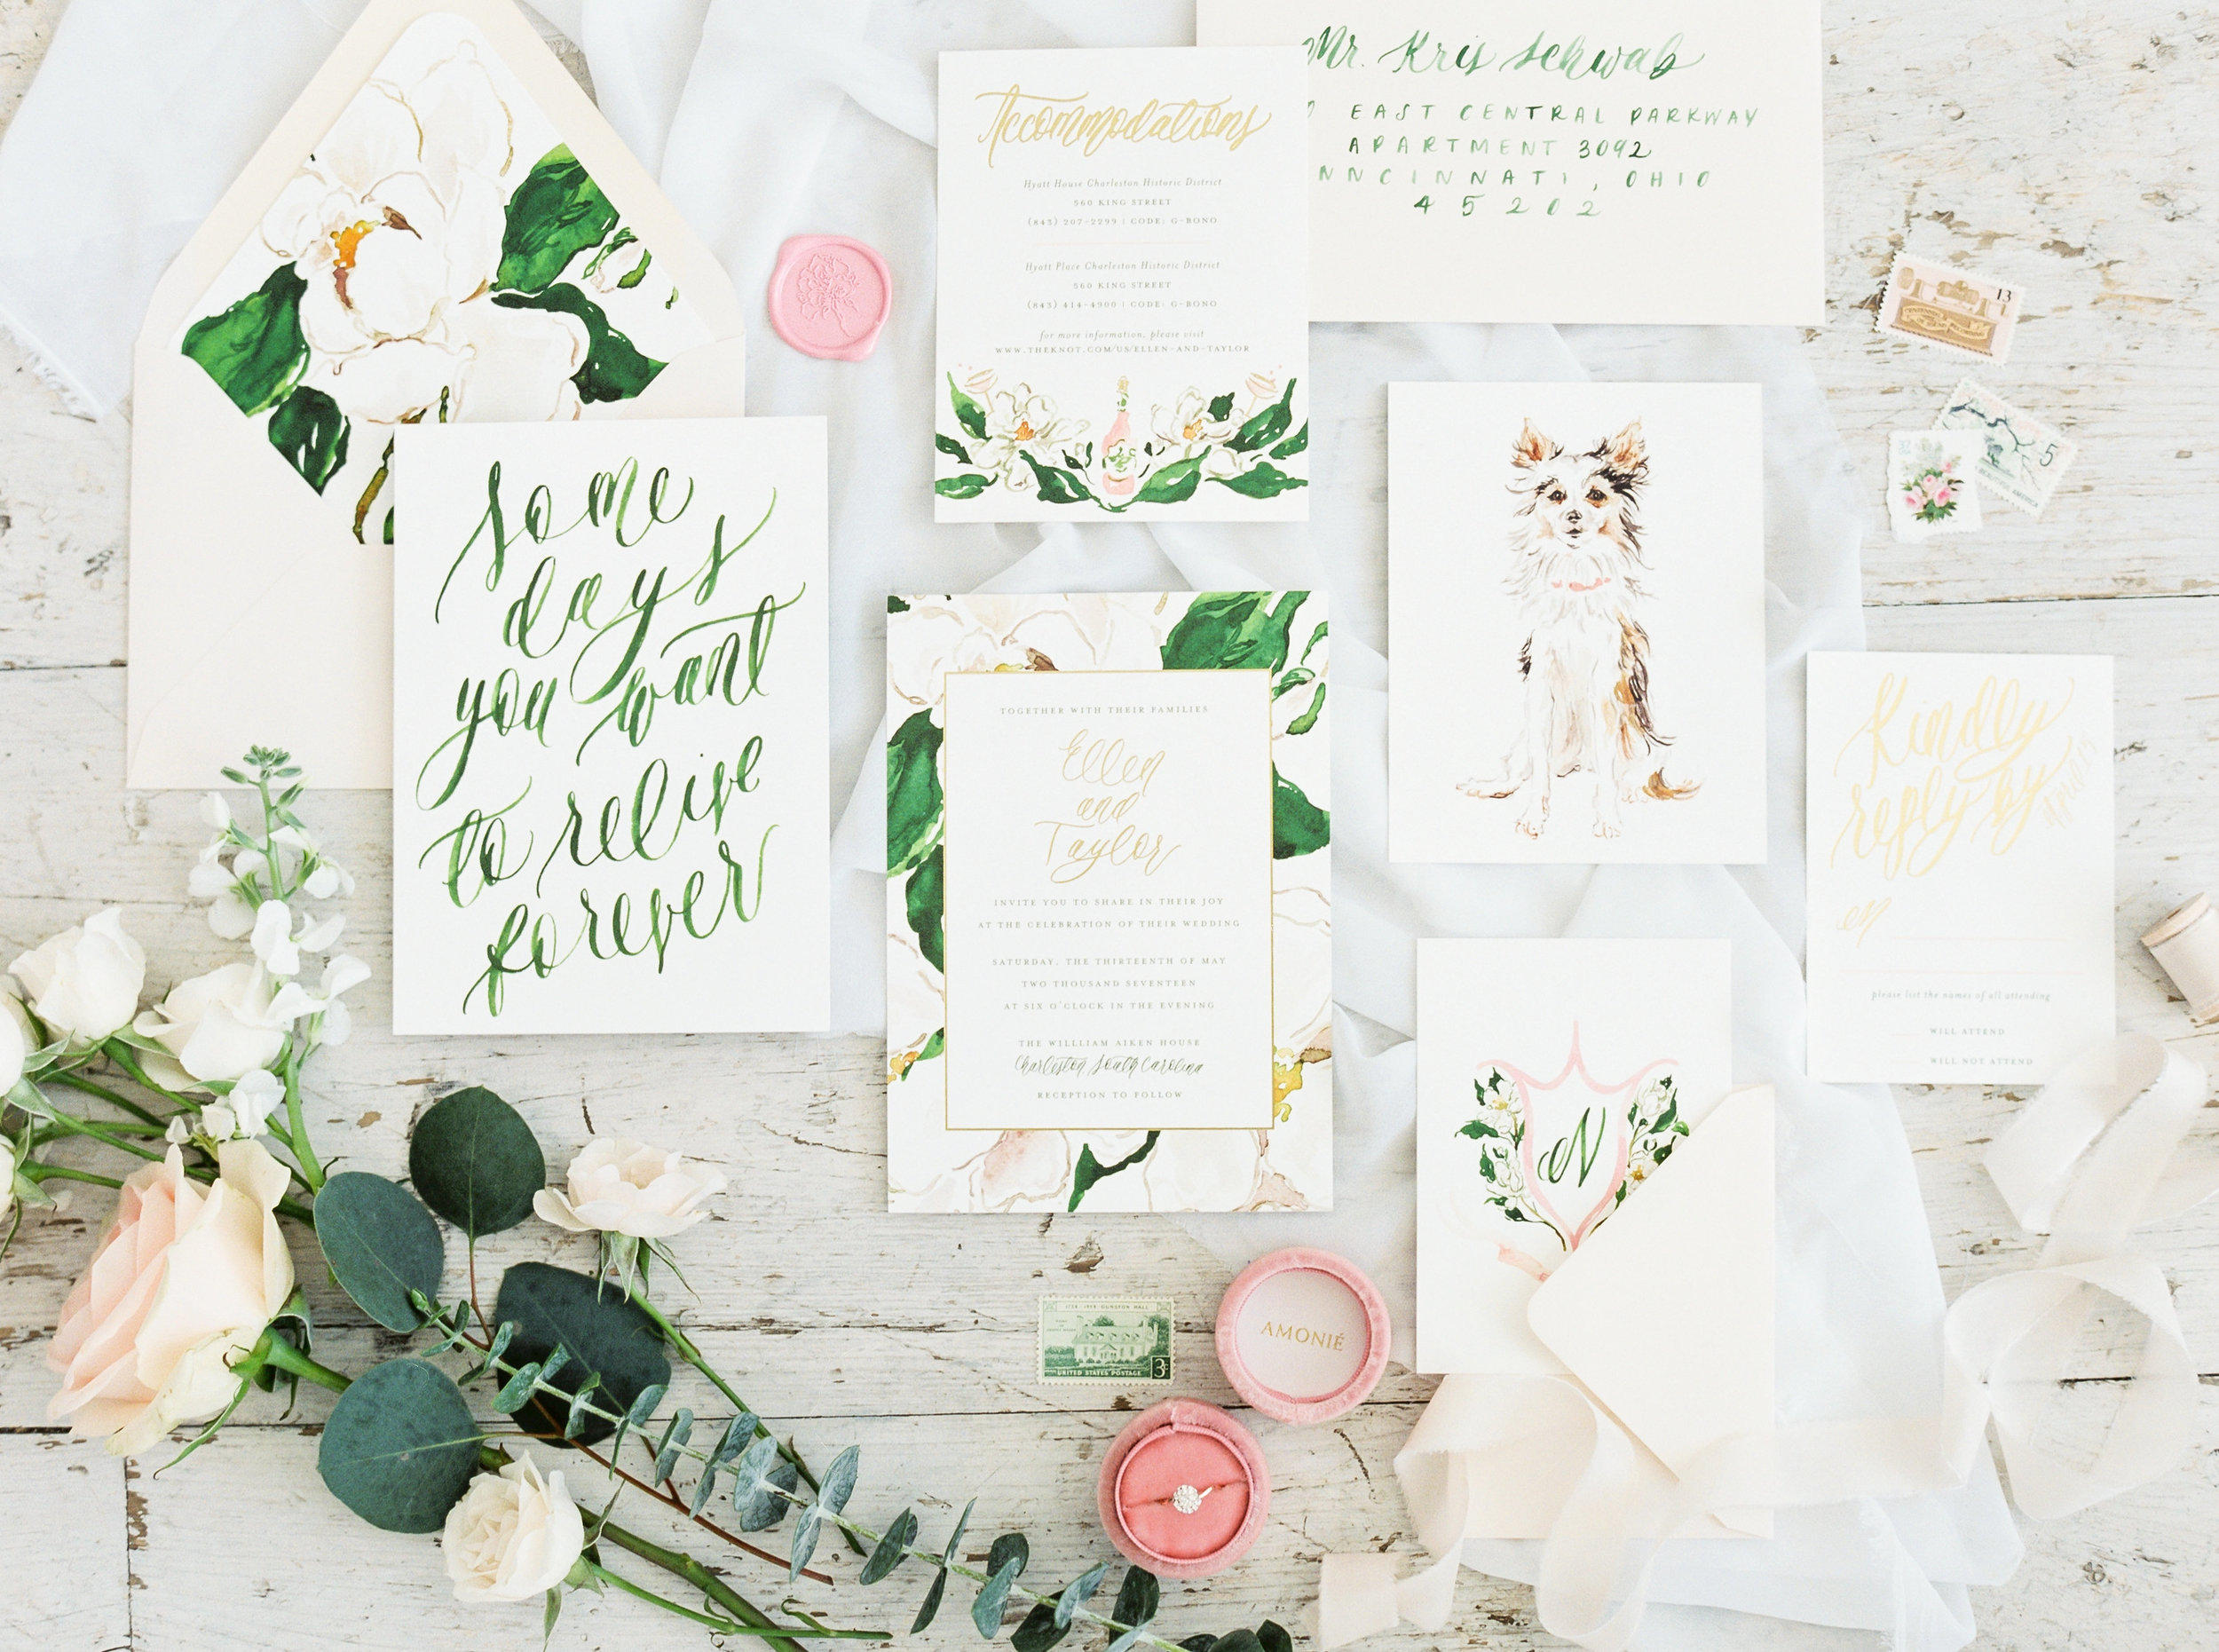 Custom Watercolor Magnolia Charleston Wedding Invitations by Simply Jessica Marie | Photo by Shalyn Nelson at Bloom the Workshop | White Sparrow Barn